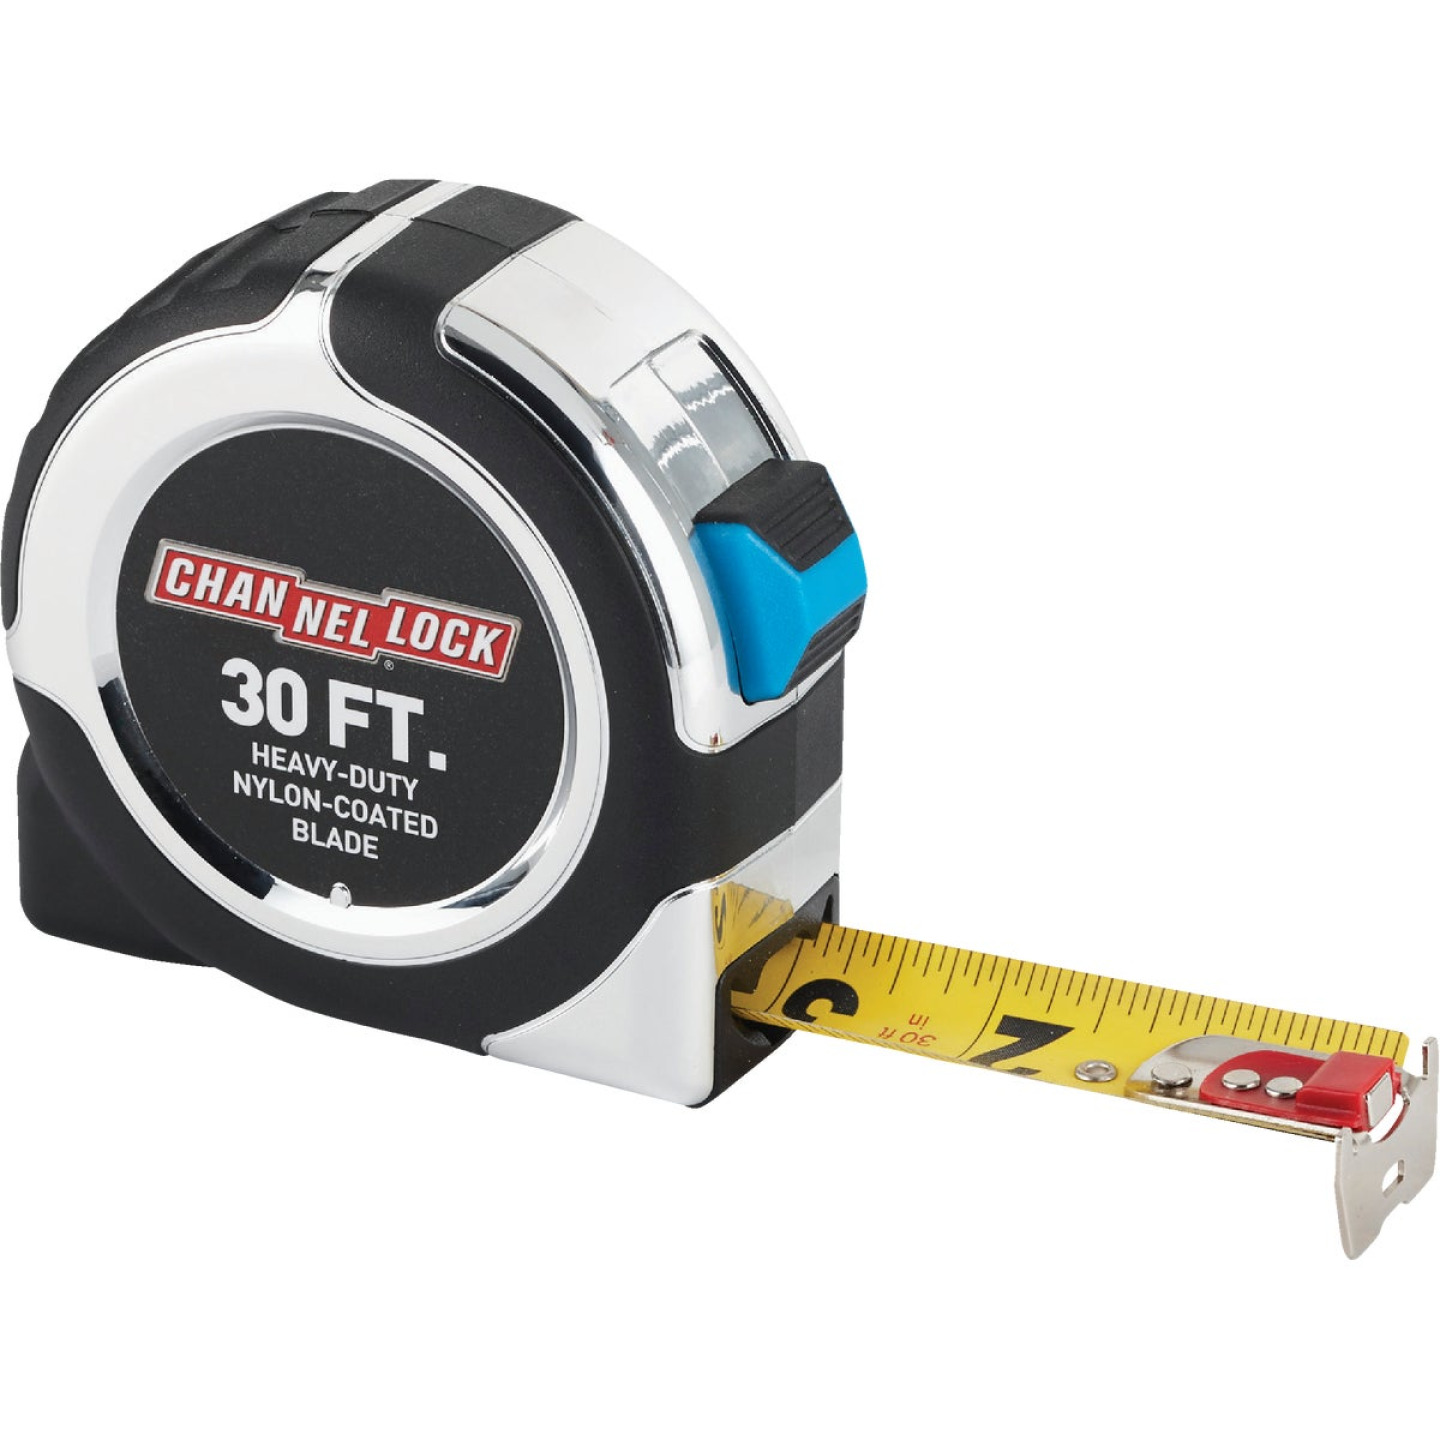 Channellock 30 Ft. Professional Tape Measure Image 1